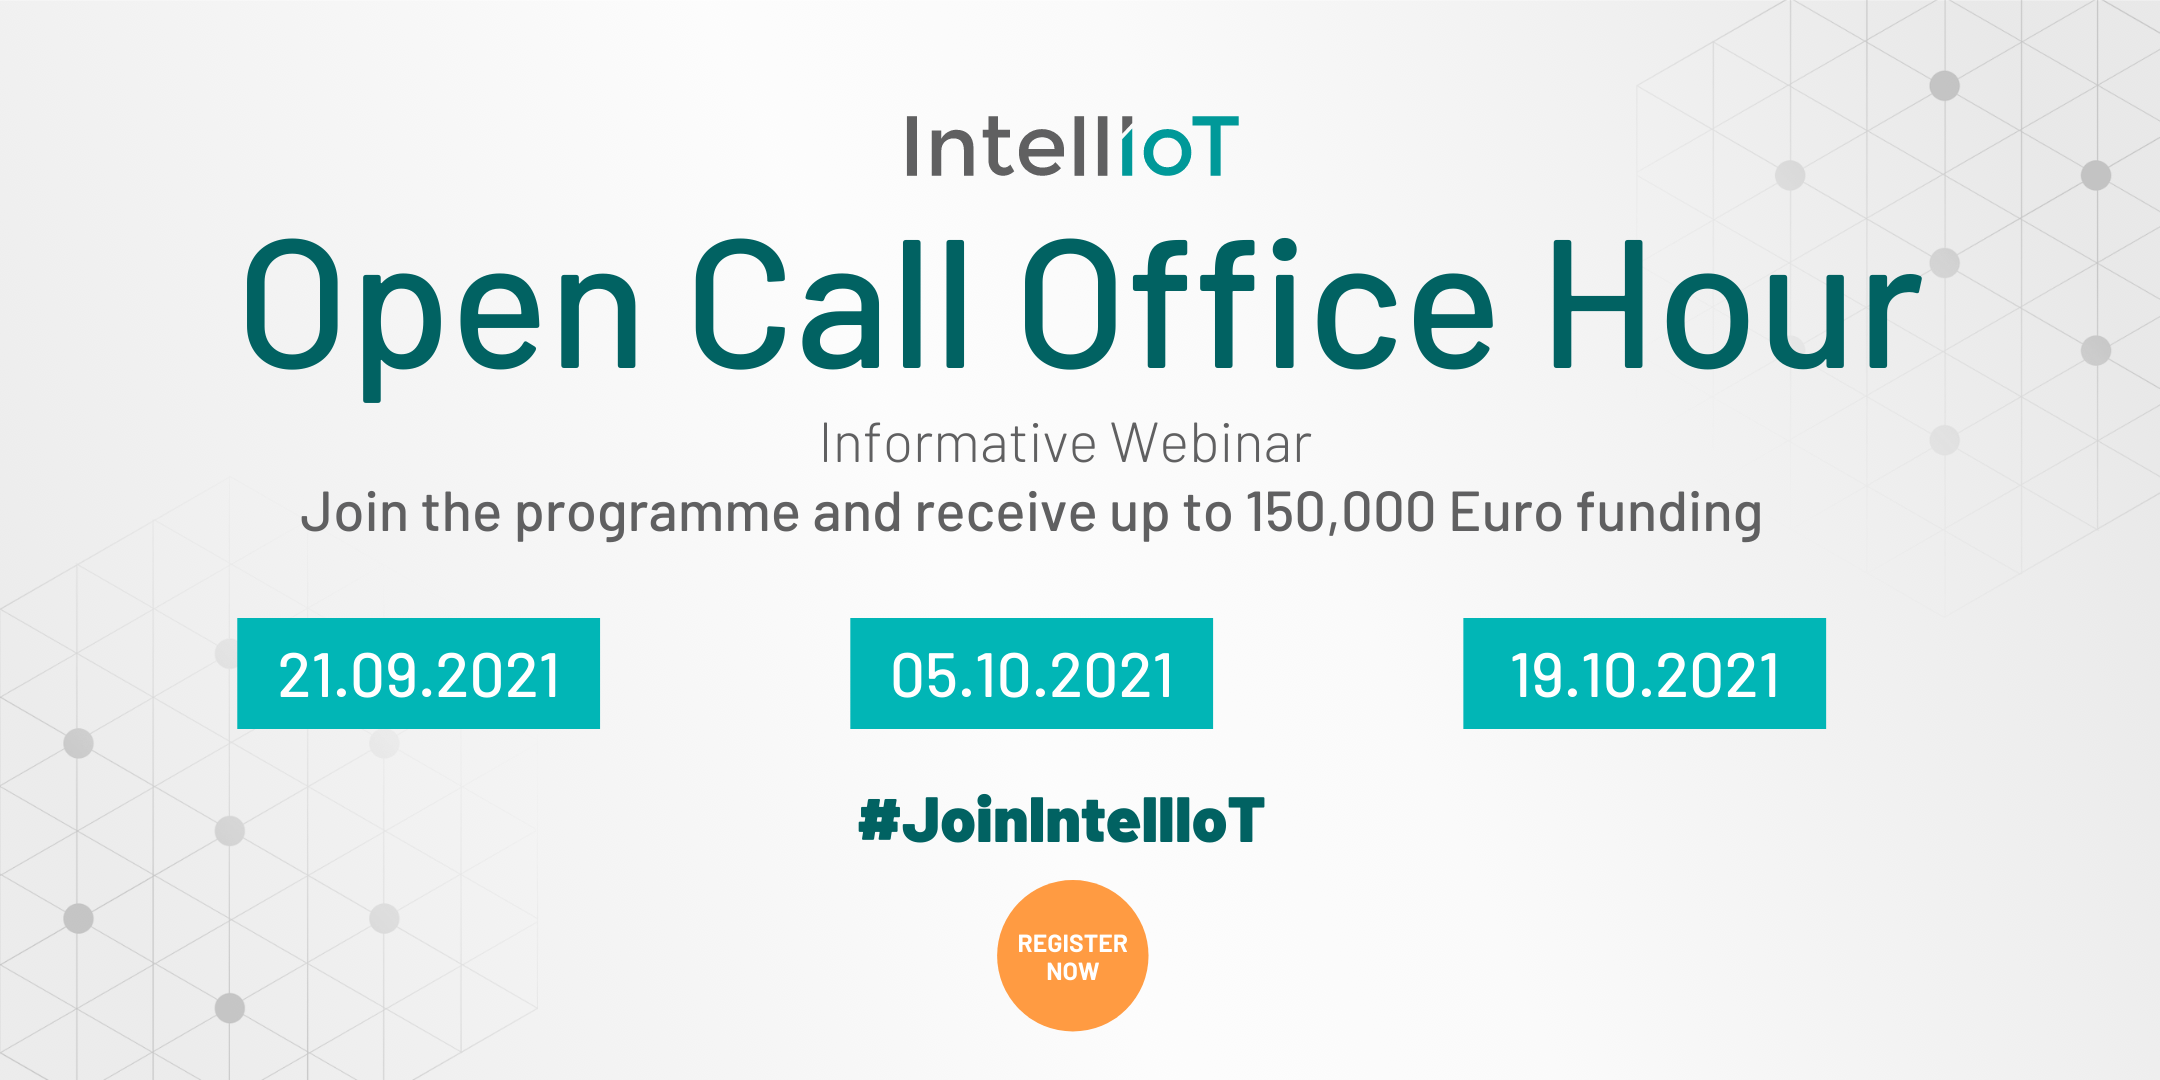 Join IntellIoT's first Open Call and receive up to 150,000 Euro funding